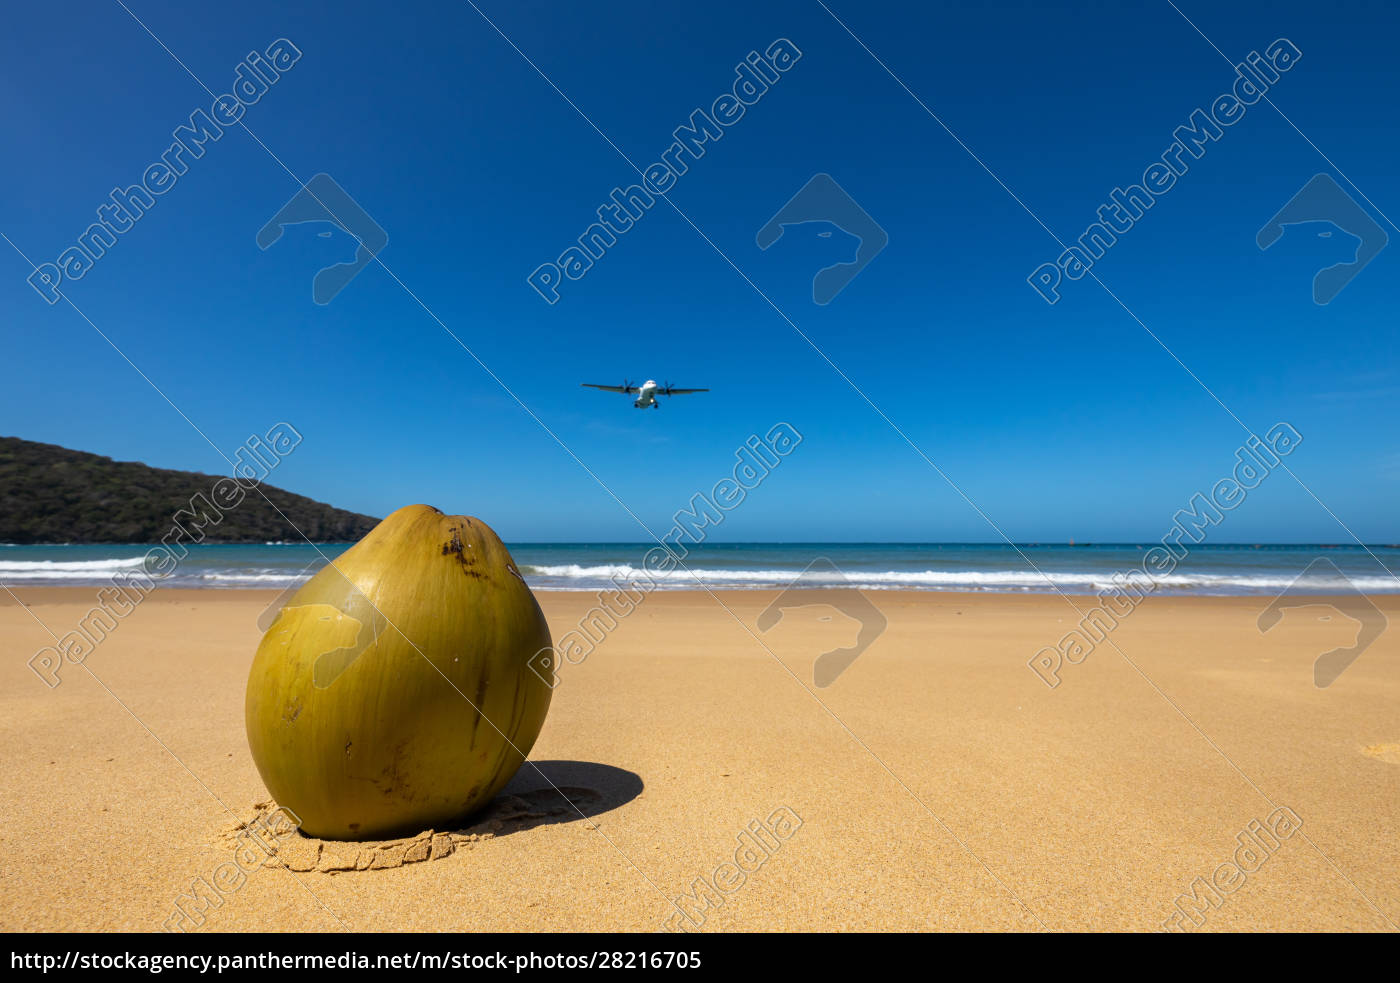 airplane, is, landing, on, con, dao - 28216705